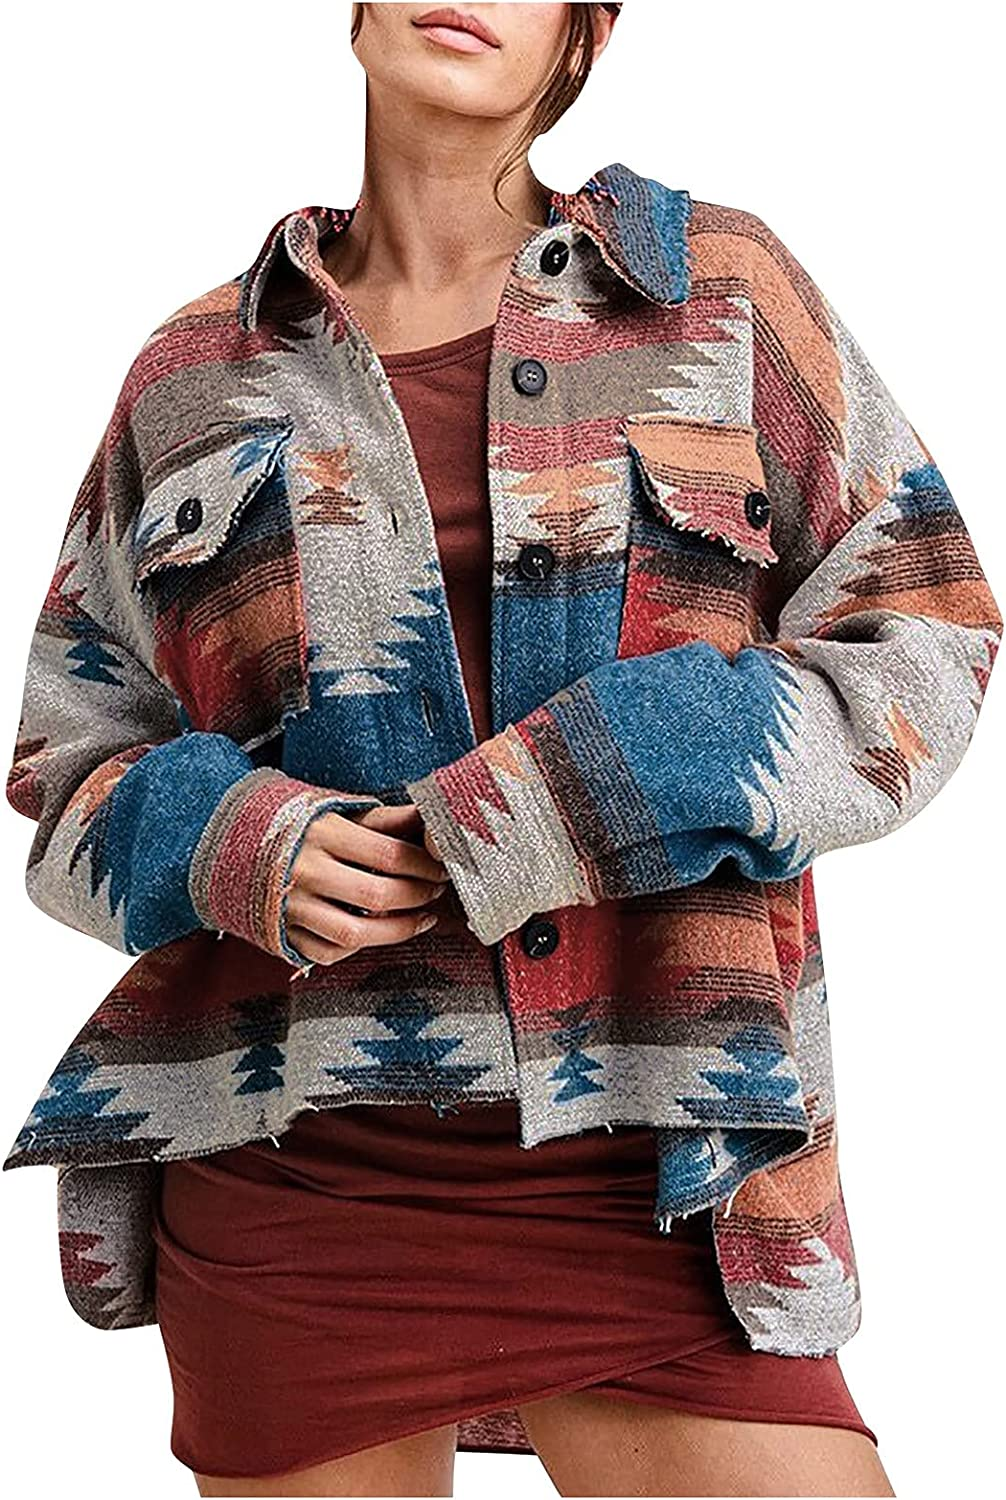 VonVonCo Cardigan Sweaters for Women Lapel Collar Geometric Prints Relaxed Loose Plus Size Jacket Coat